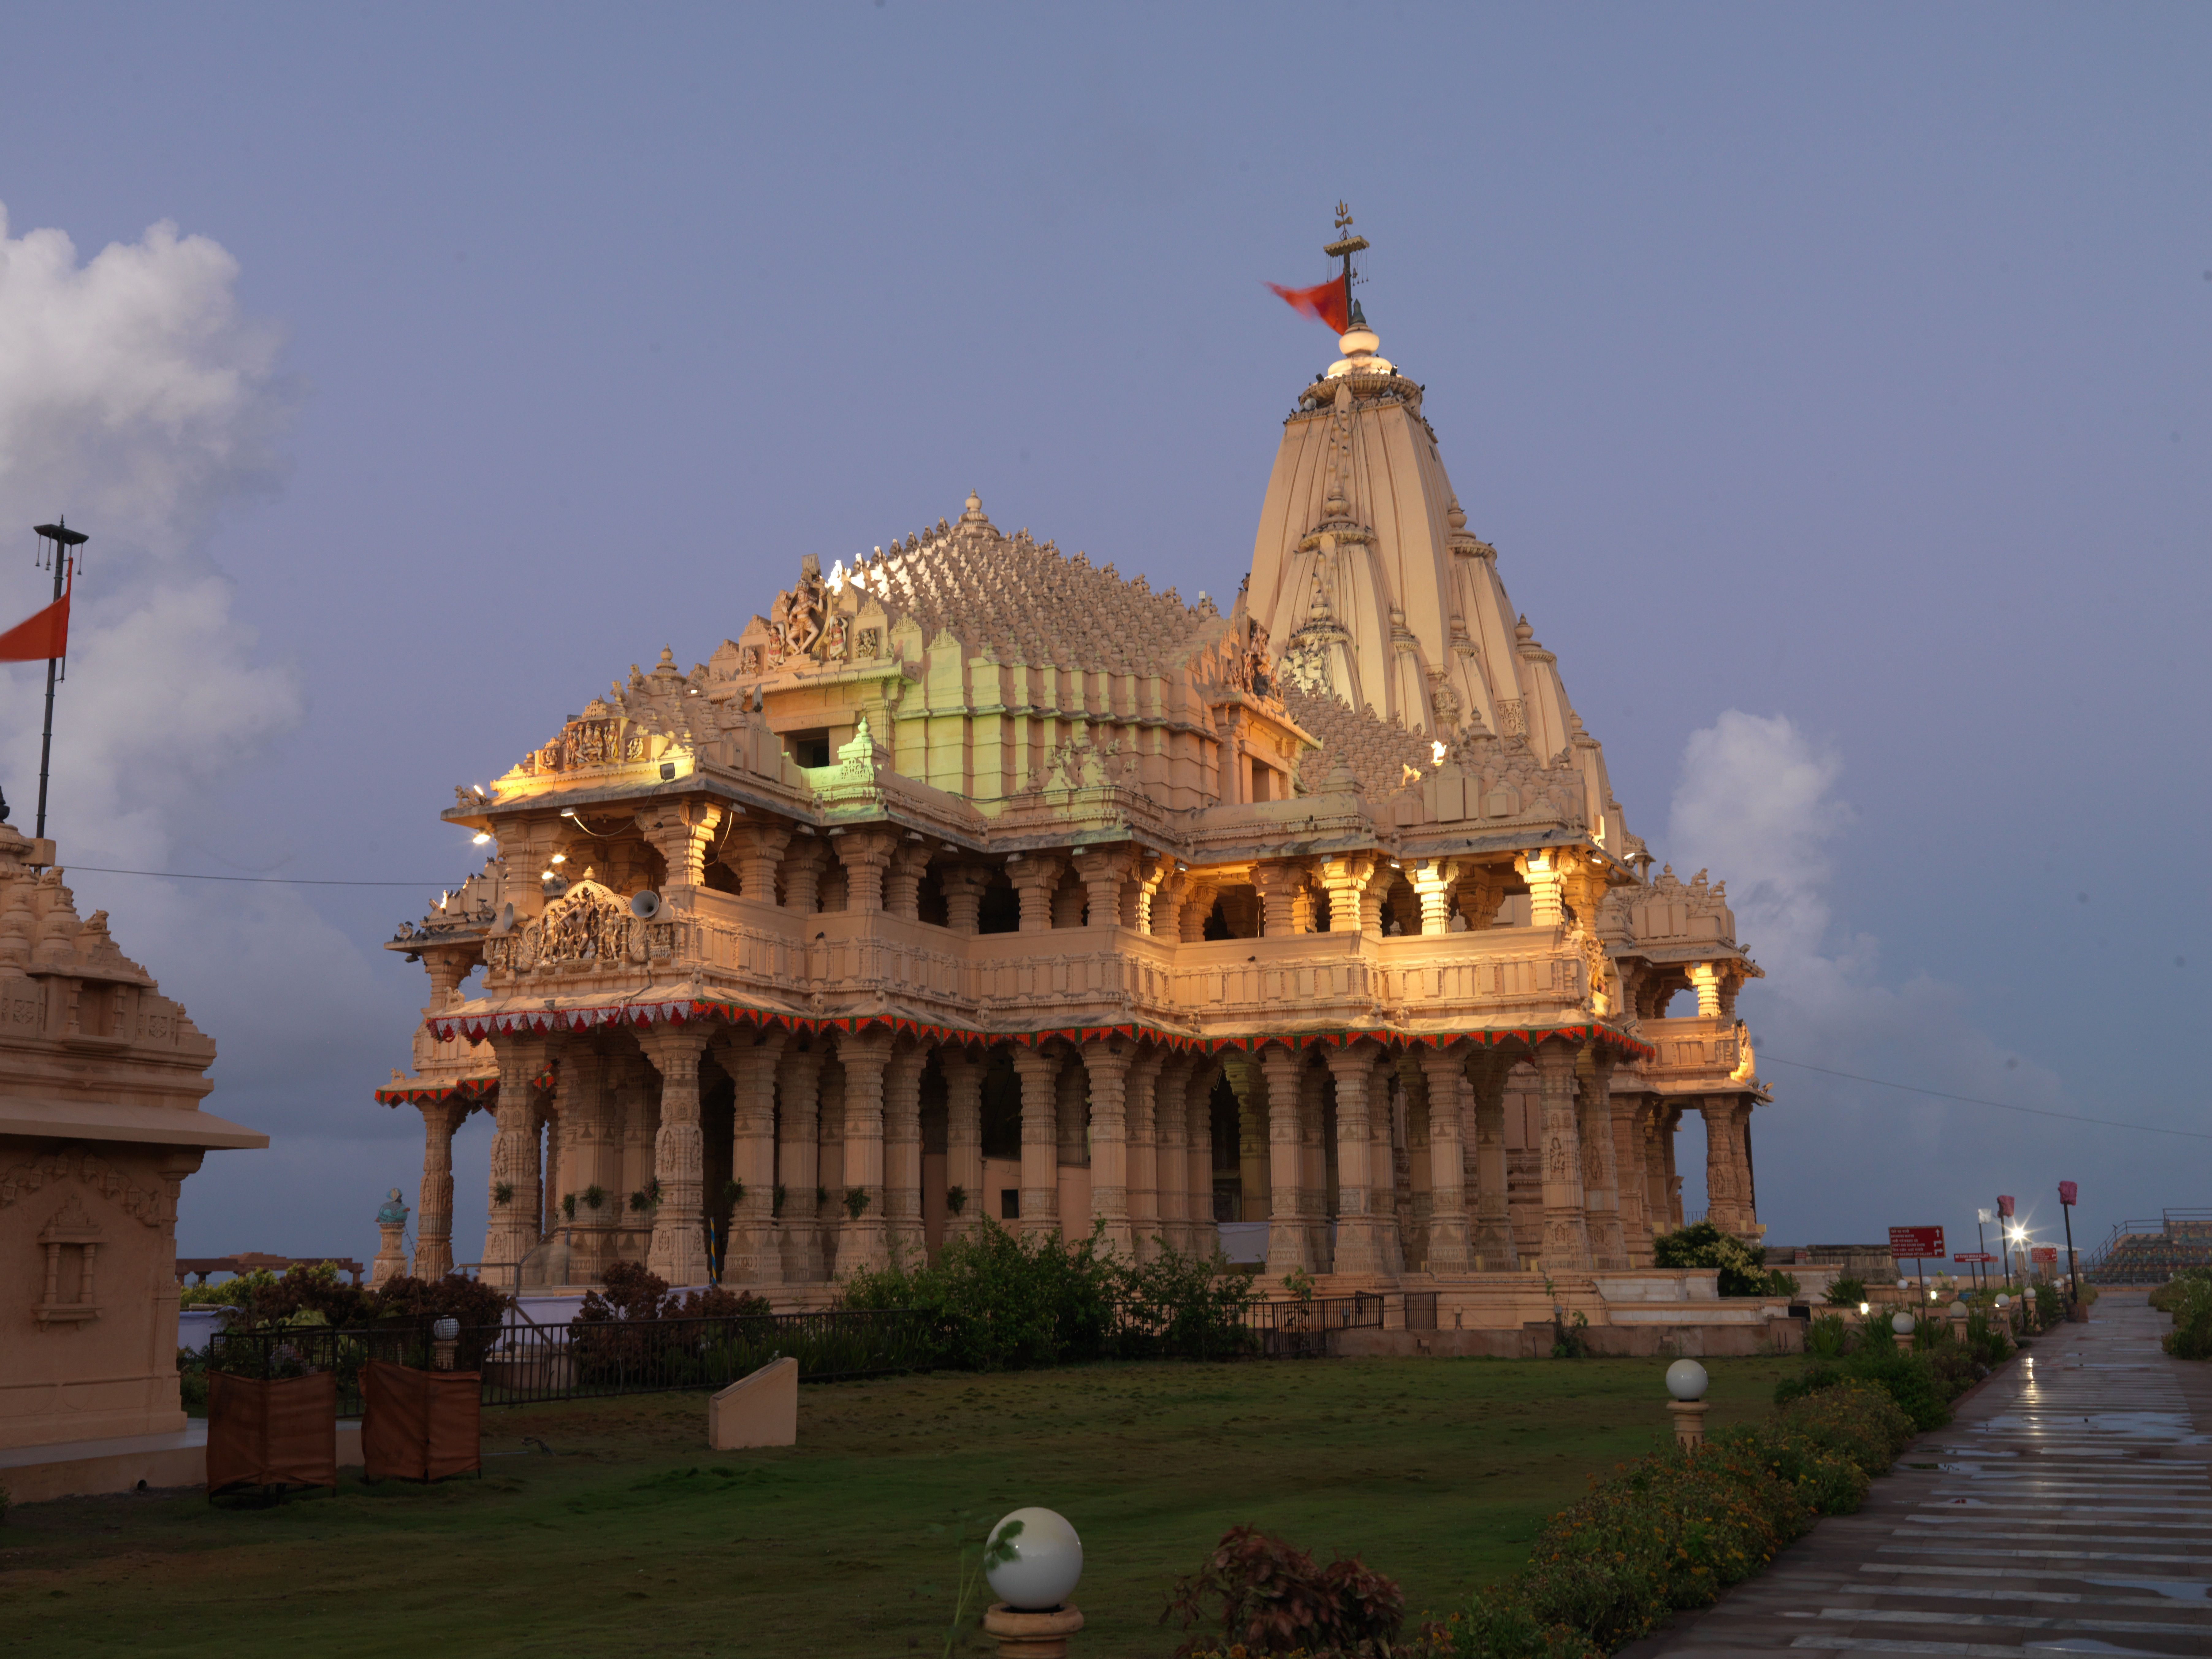 Somnath is an important pilgrimage and tourist spot